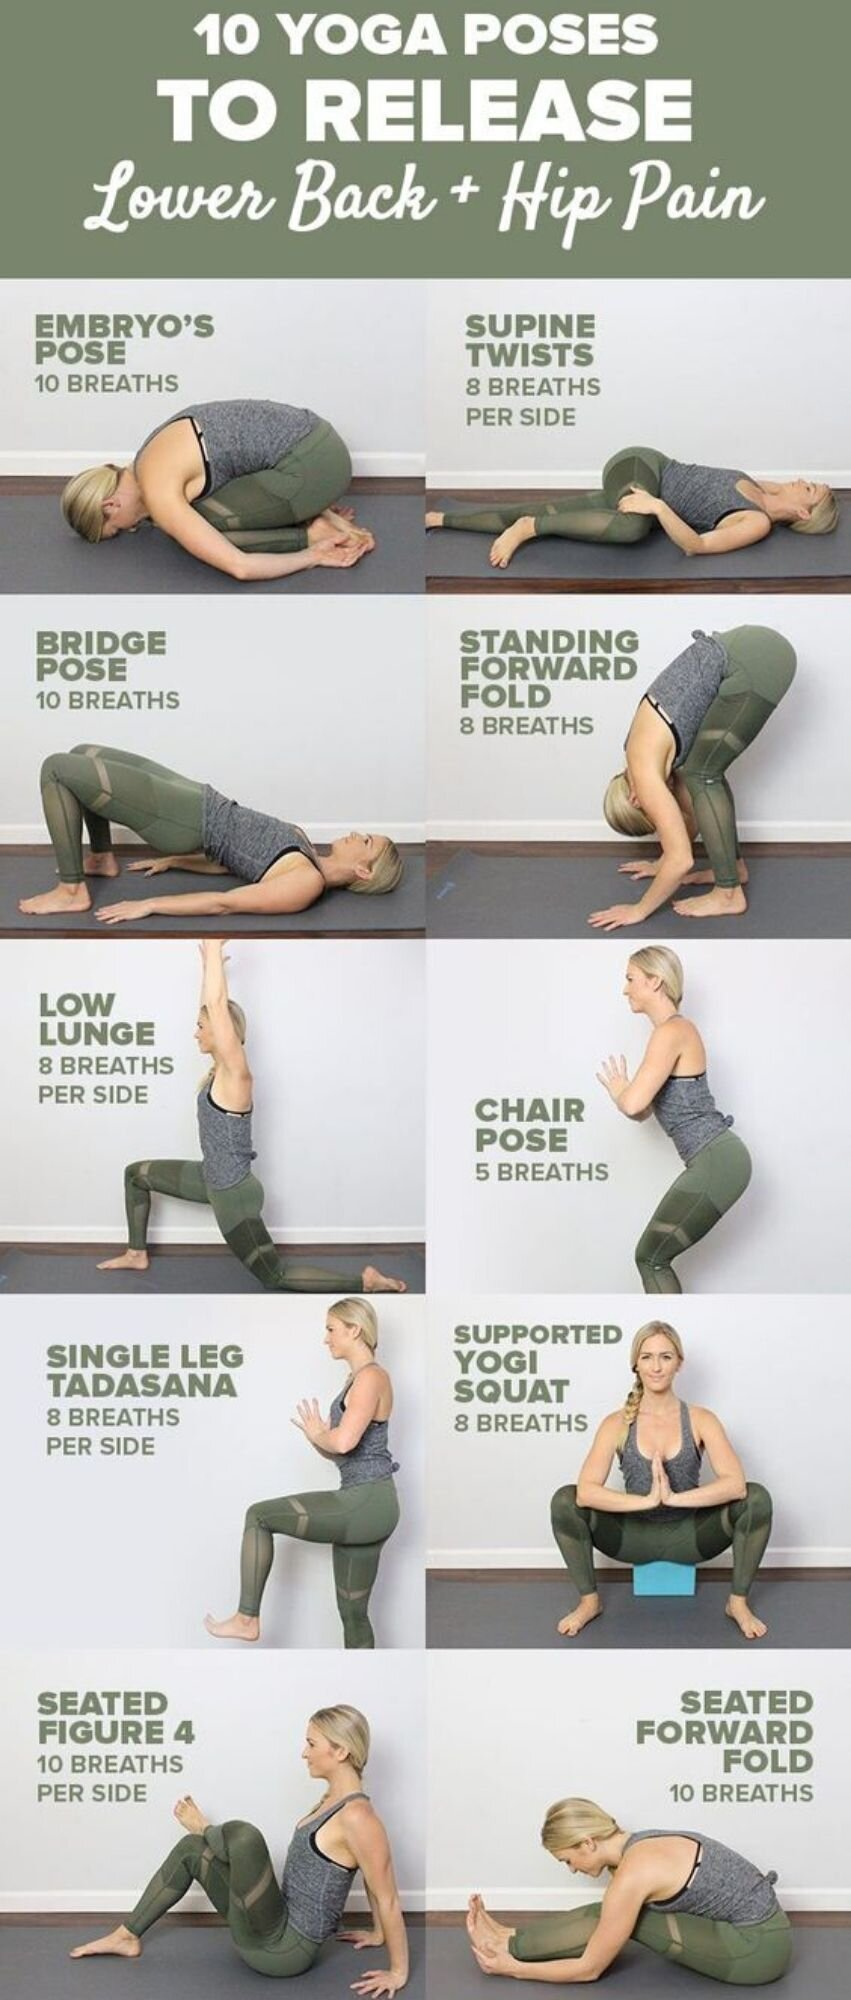 20 Yoga Poses to Release Lower Back and Hip Pain — Bluestar ...